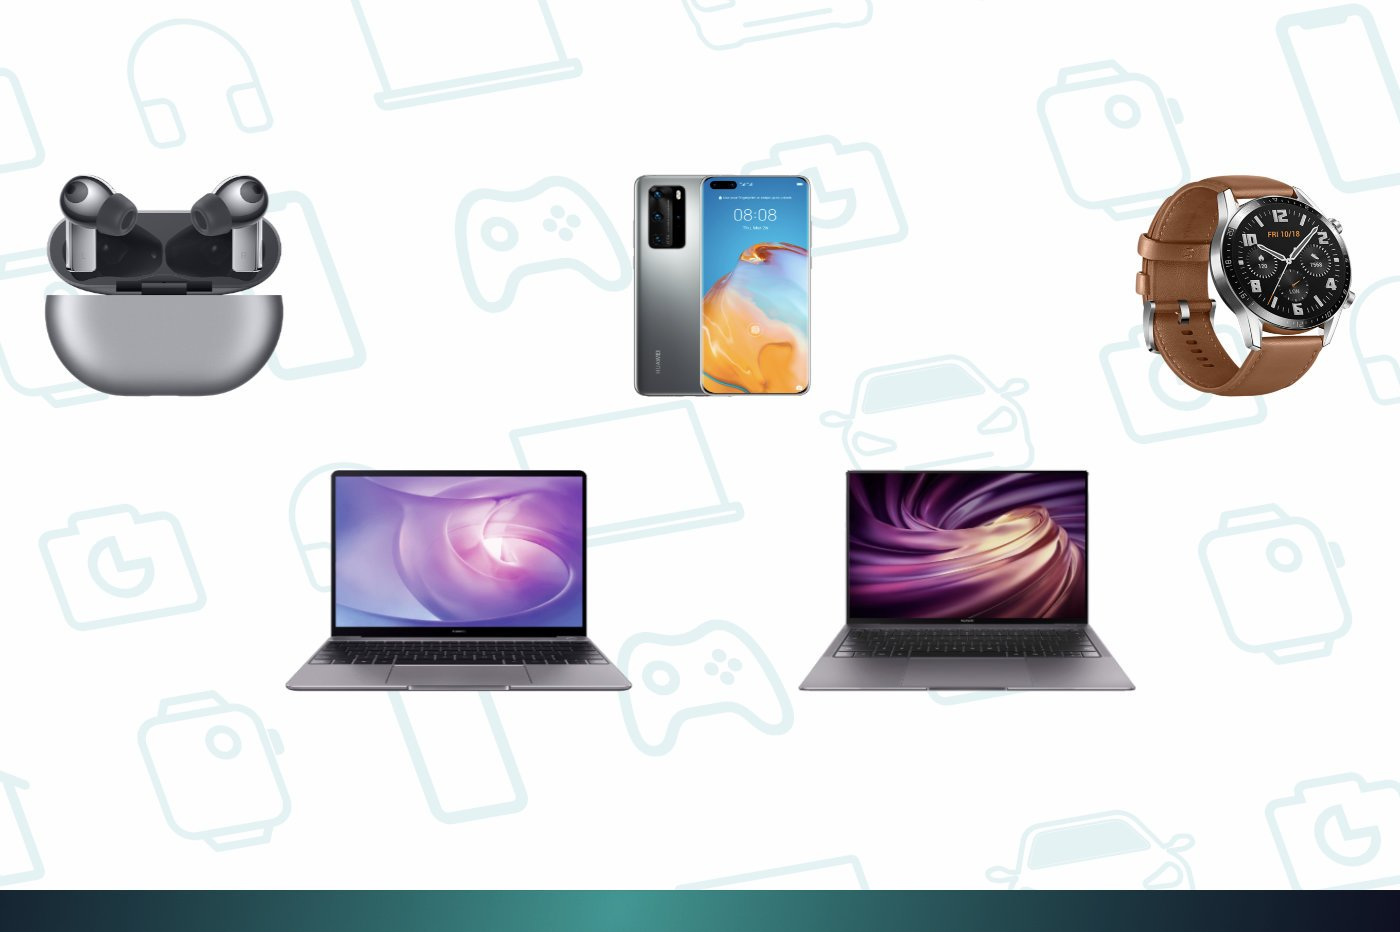 Huawei Days : Huawei lance de grosses promotions sur ses MateBook, P40 Pro ou Watch GT